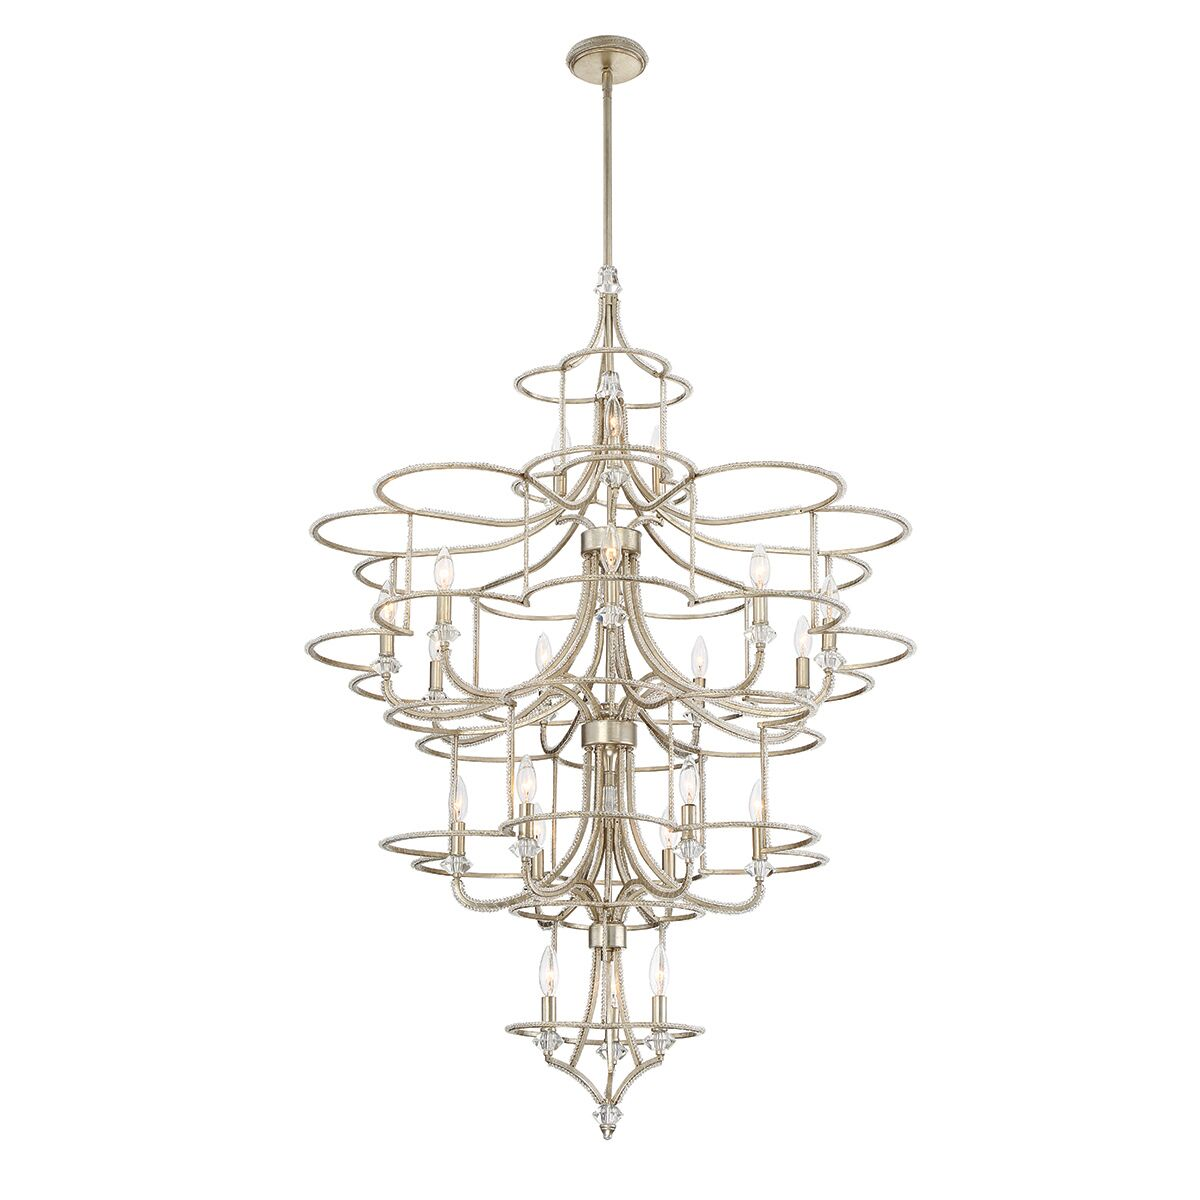 Palmisano 21-Light Chandelier